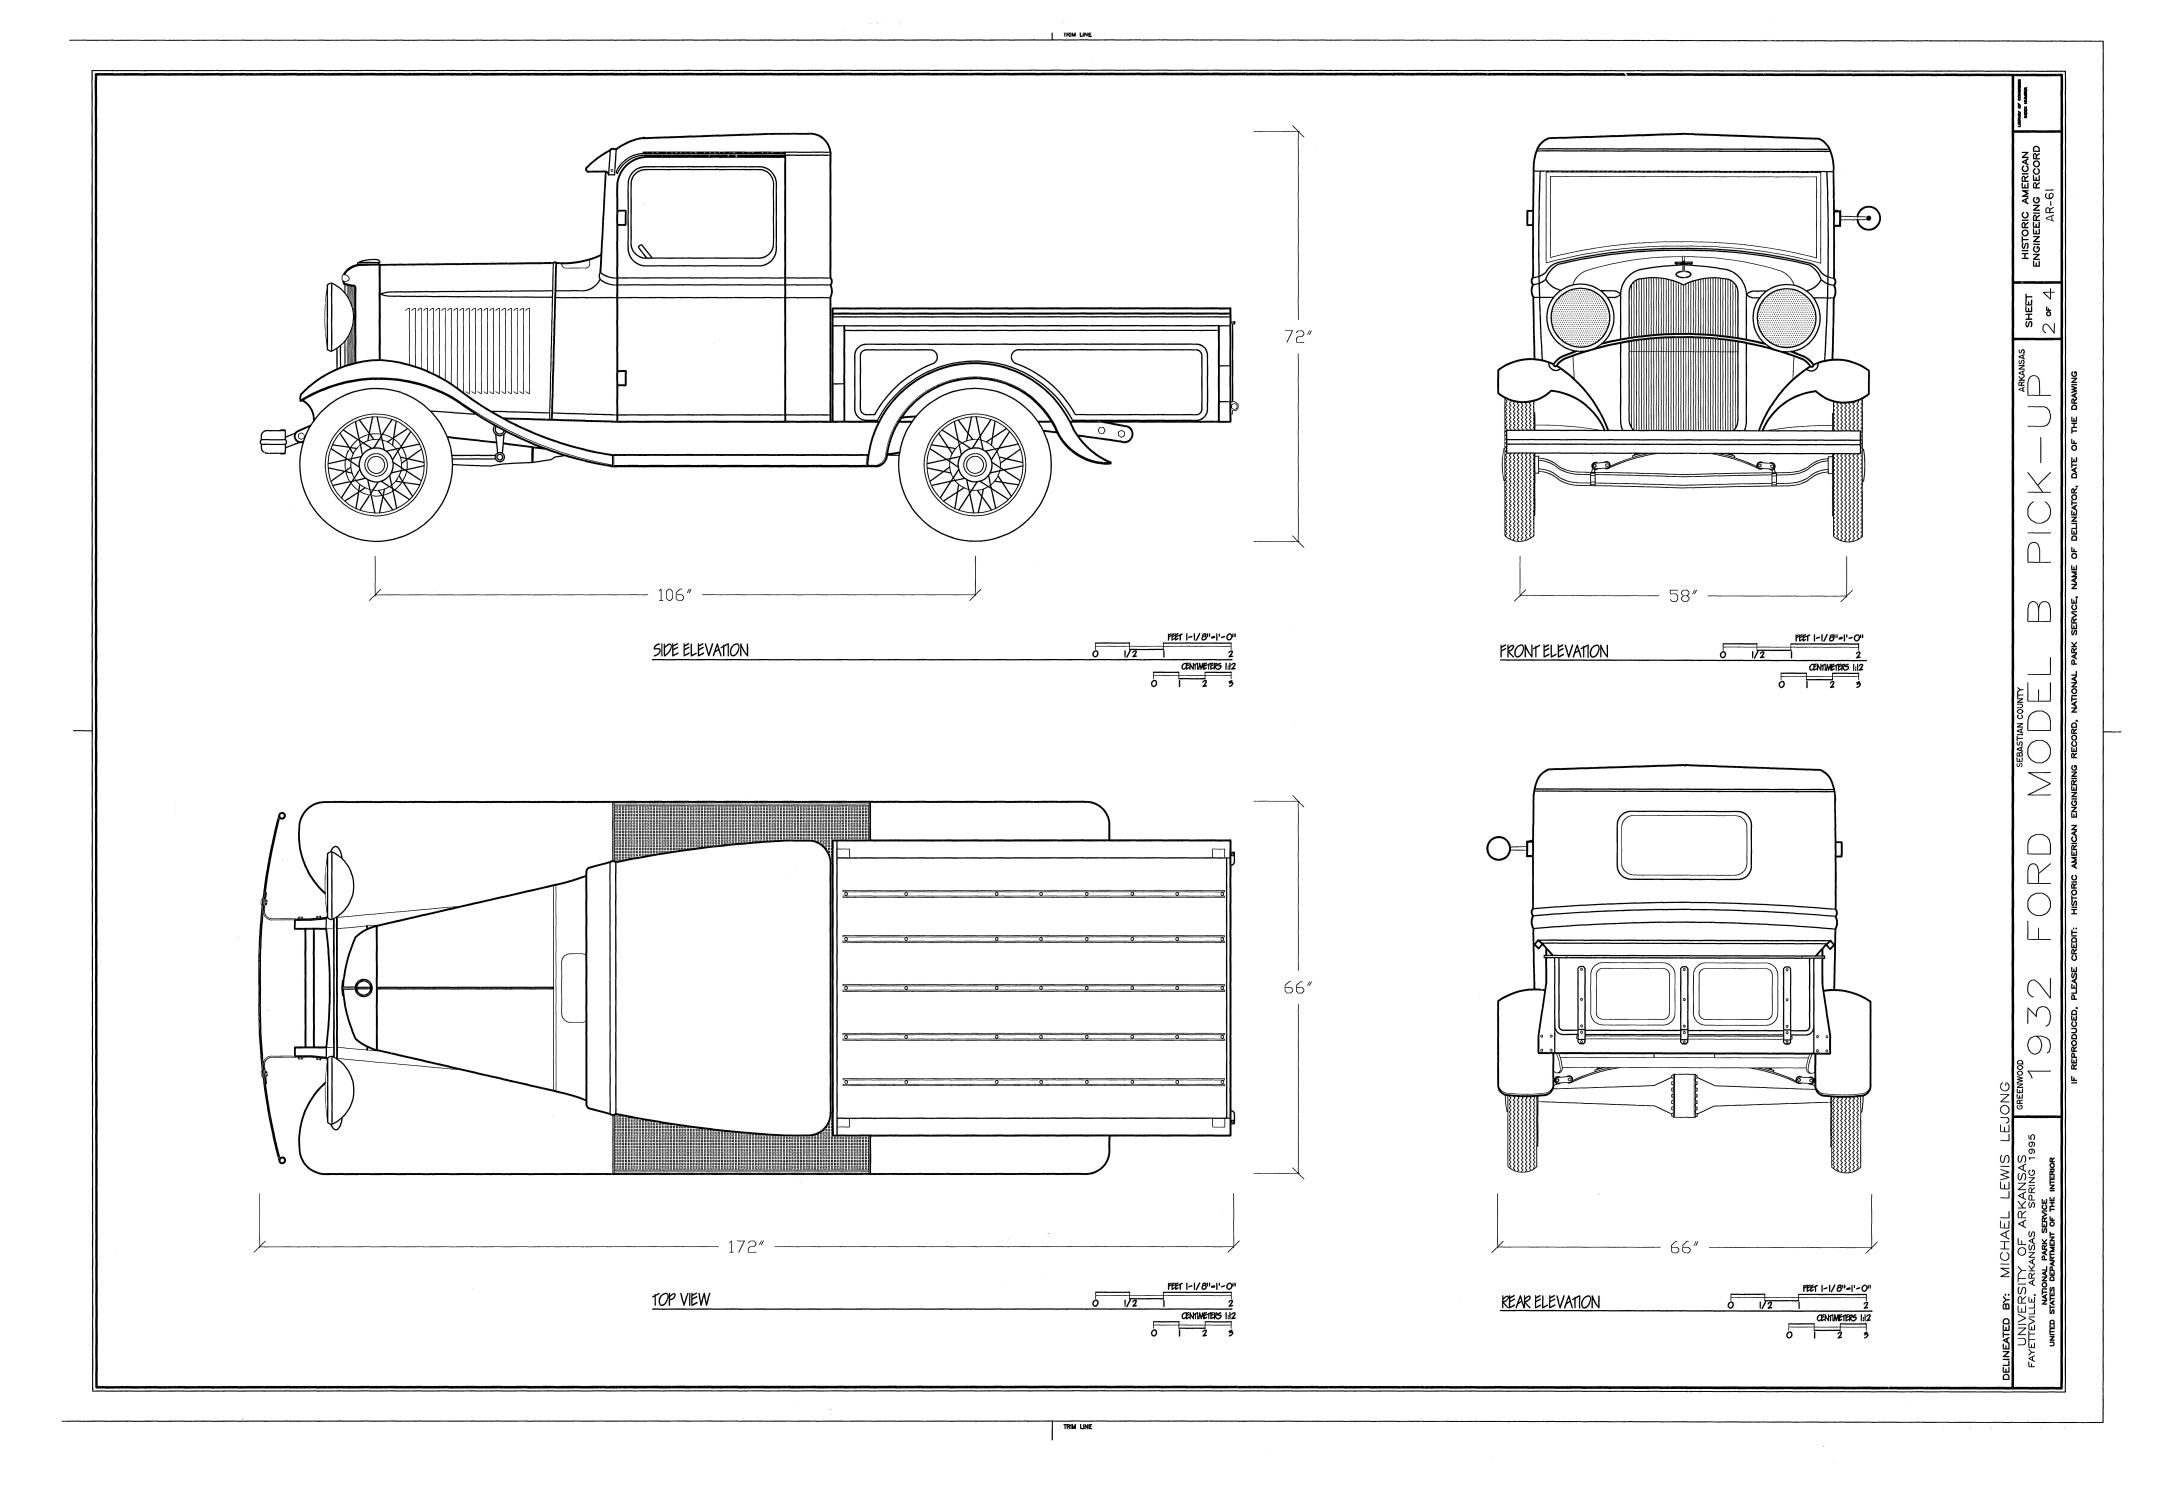 1932 Ford blueprint